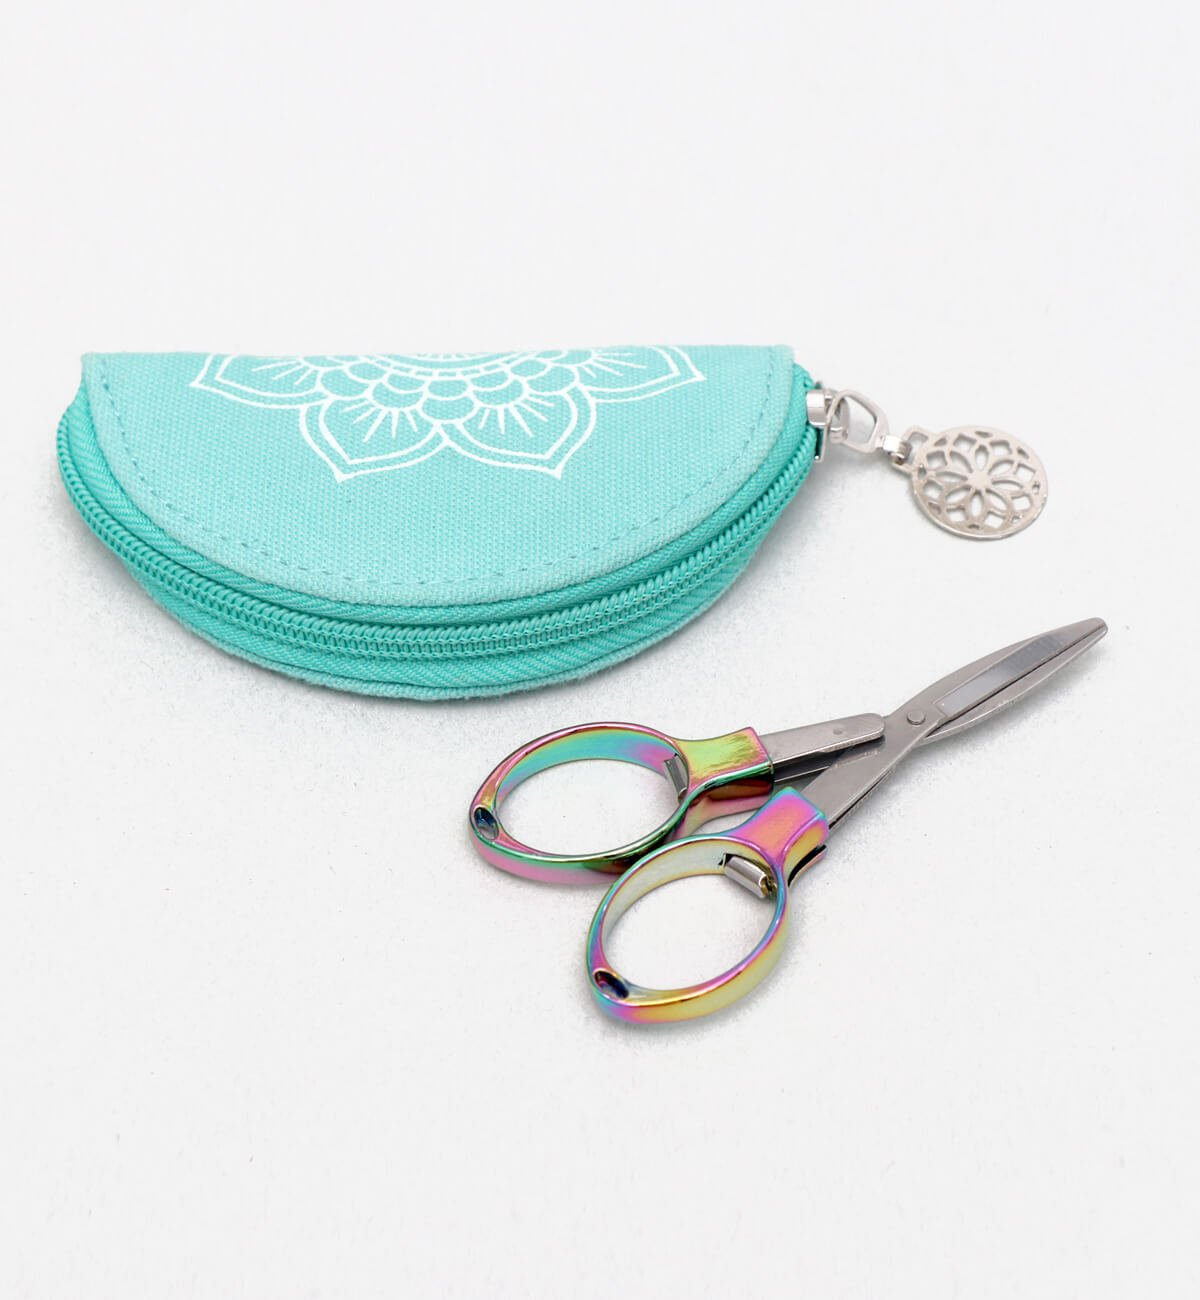 Mindful Collection Rainbow Folding Scissors